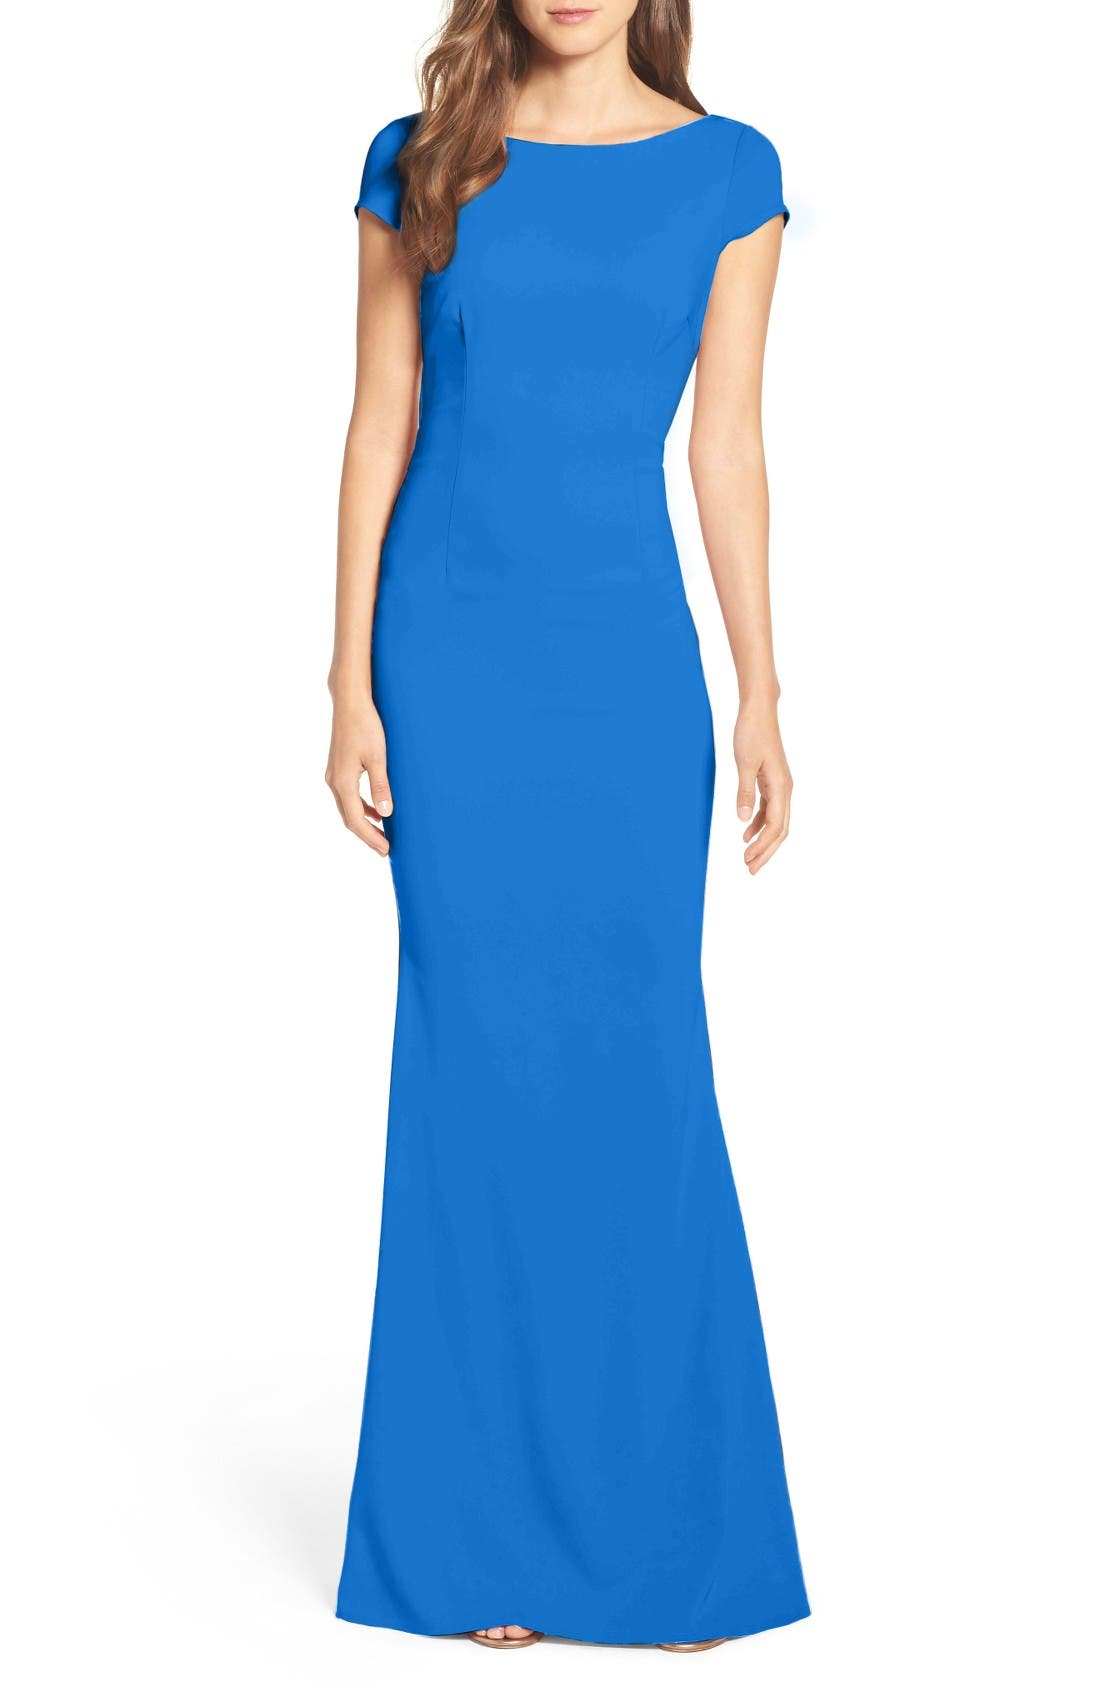 Alternate Image 1 Selected - Katie May Plunge Knot Back Gown